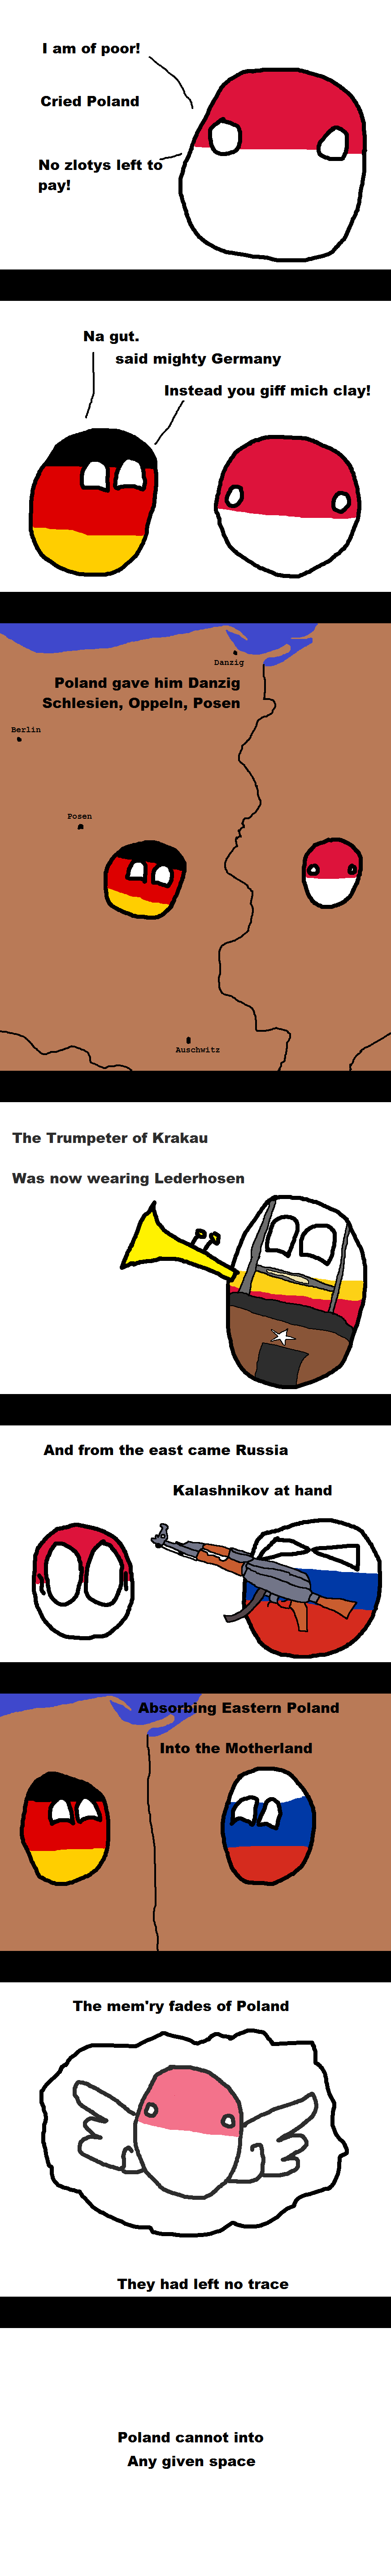 The End of Poland